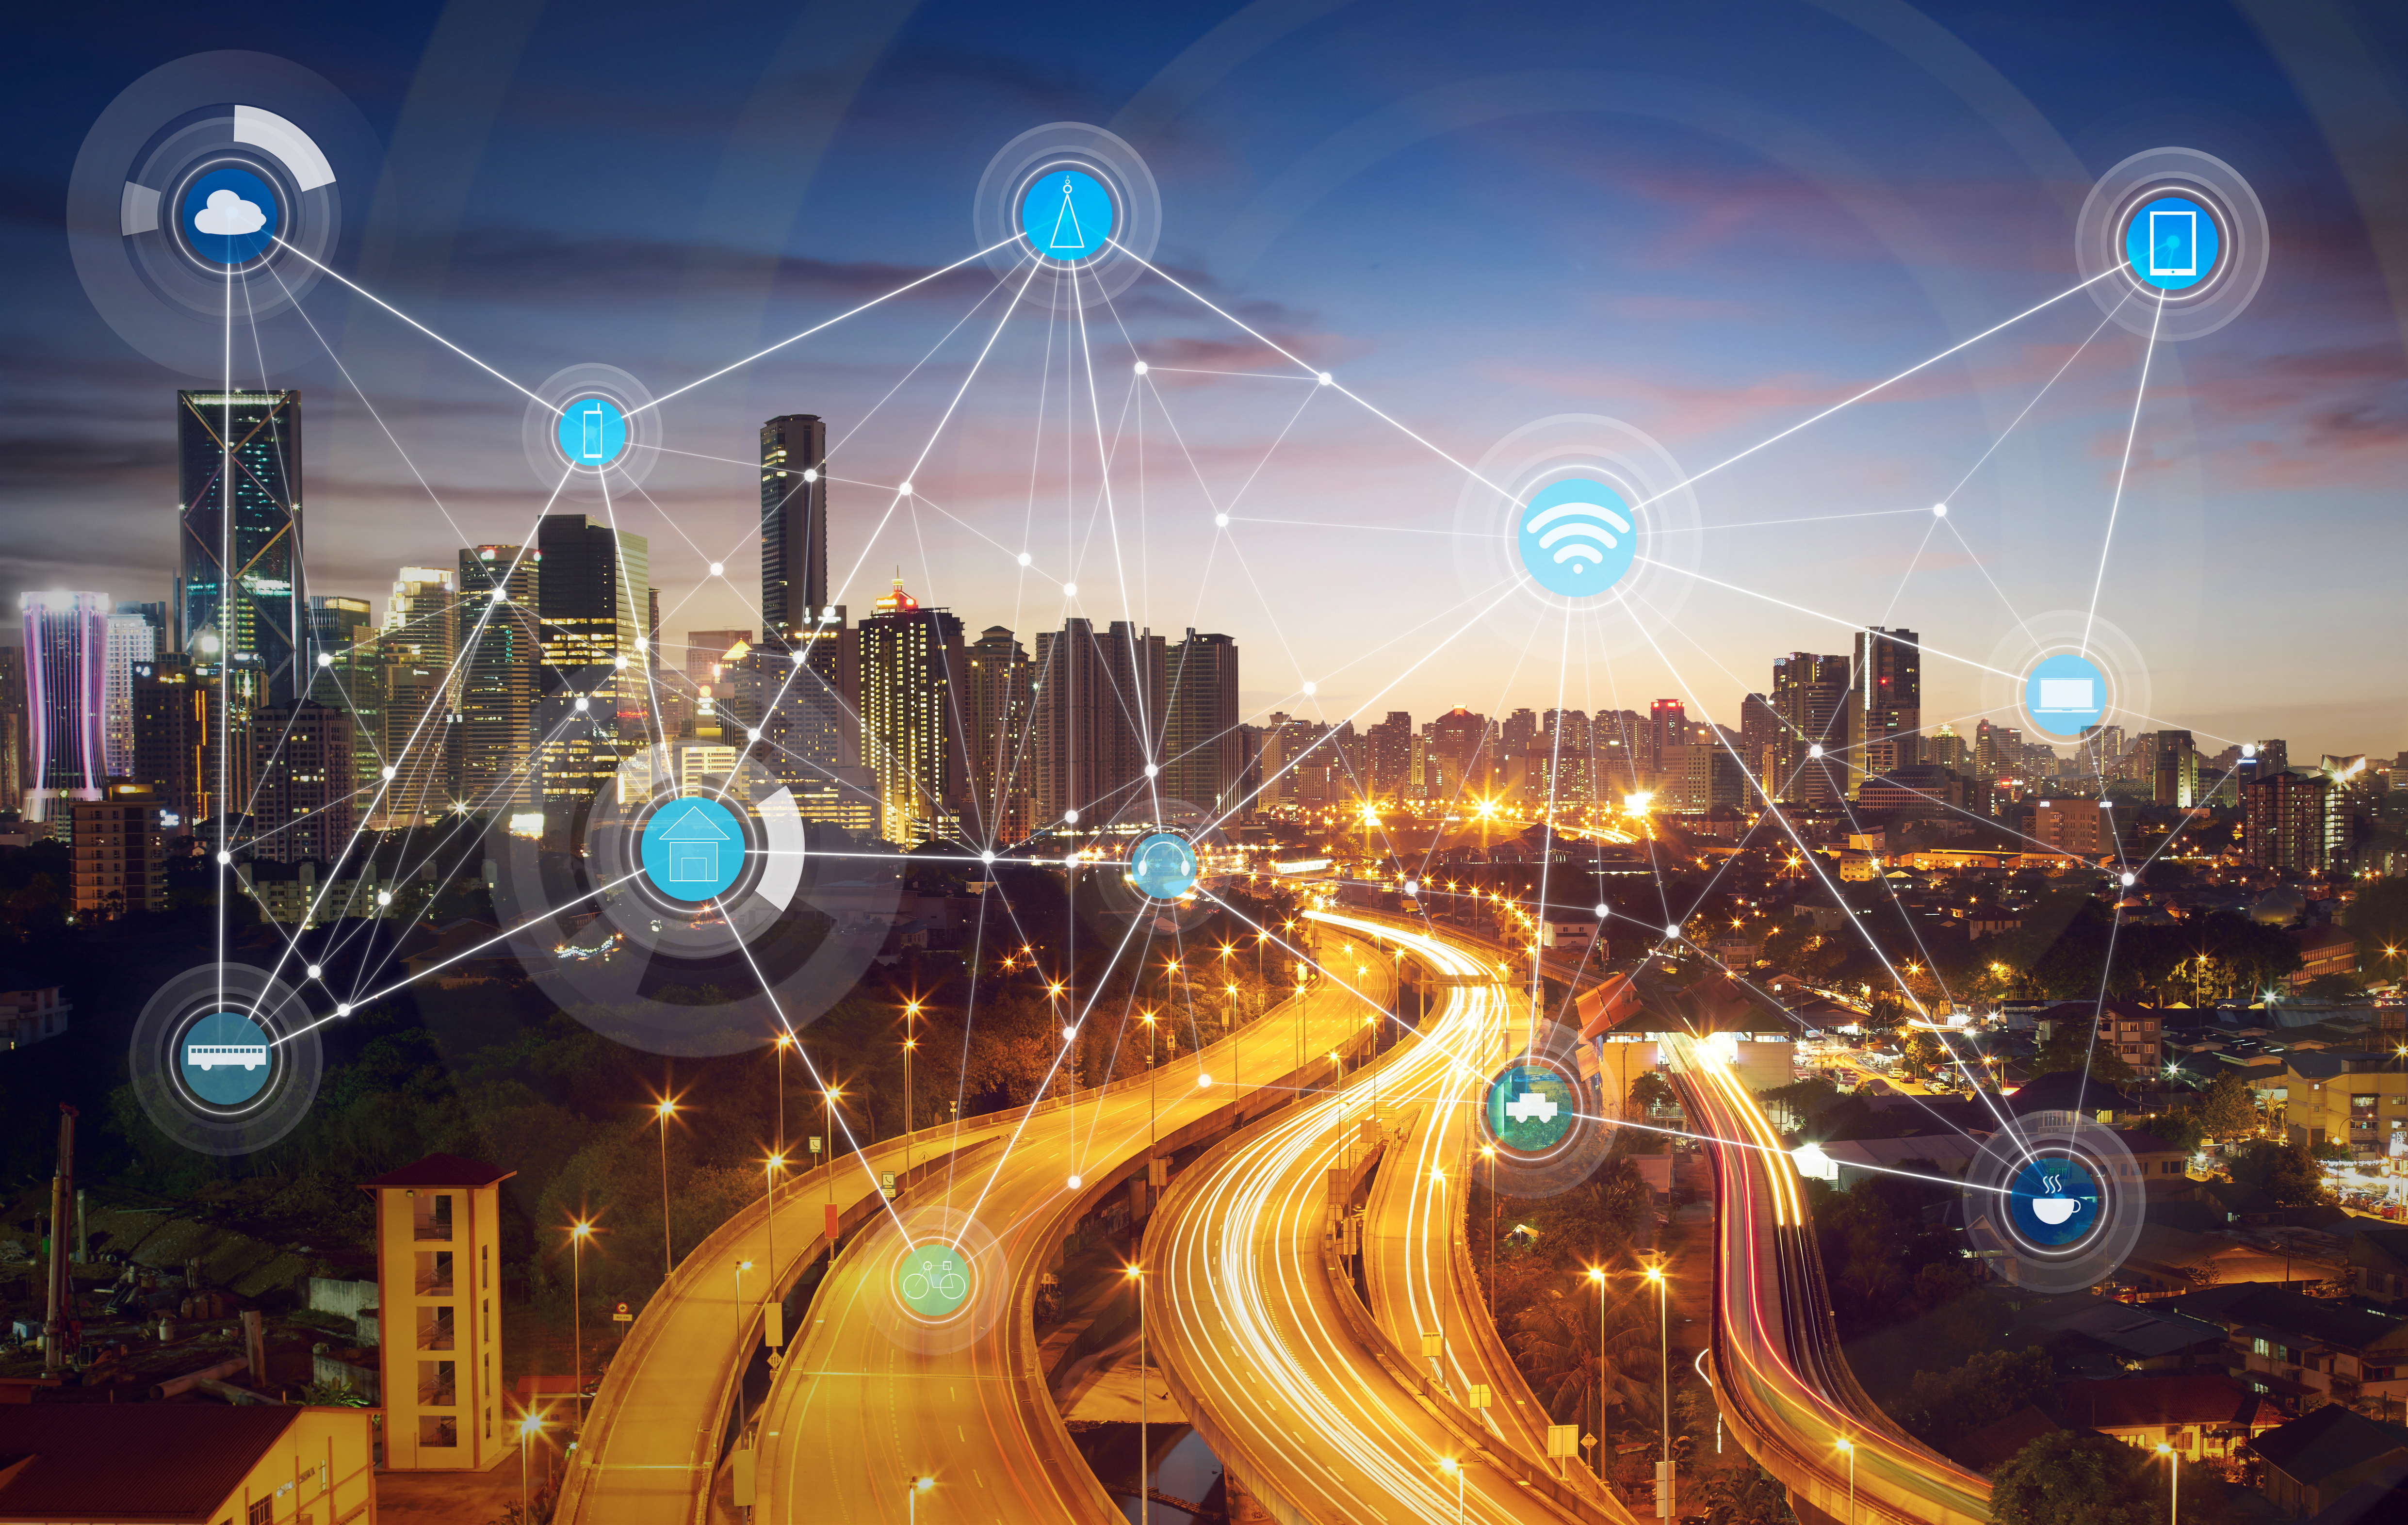 Why We're Still Just Getting Started on the IoT Journey